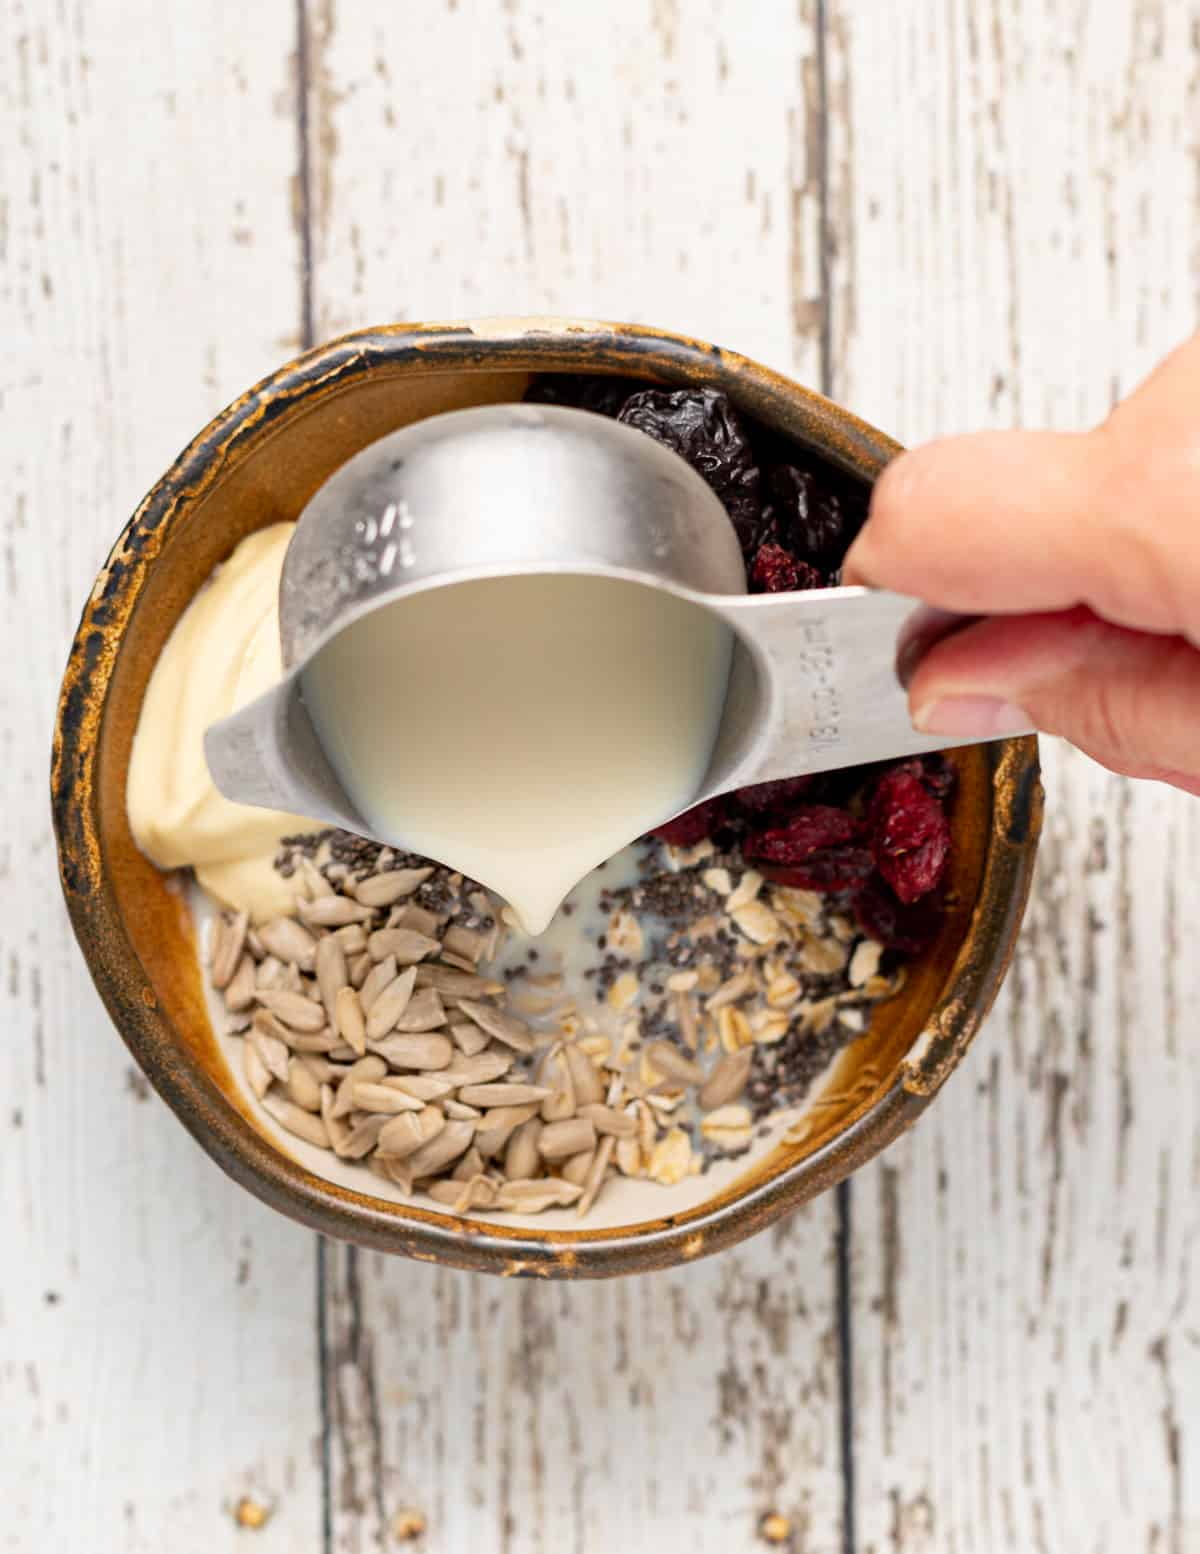 plant milk pouring into a bowl of oat, fruit and yogurt